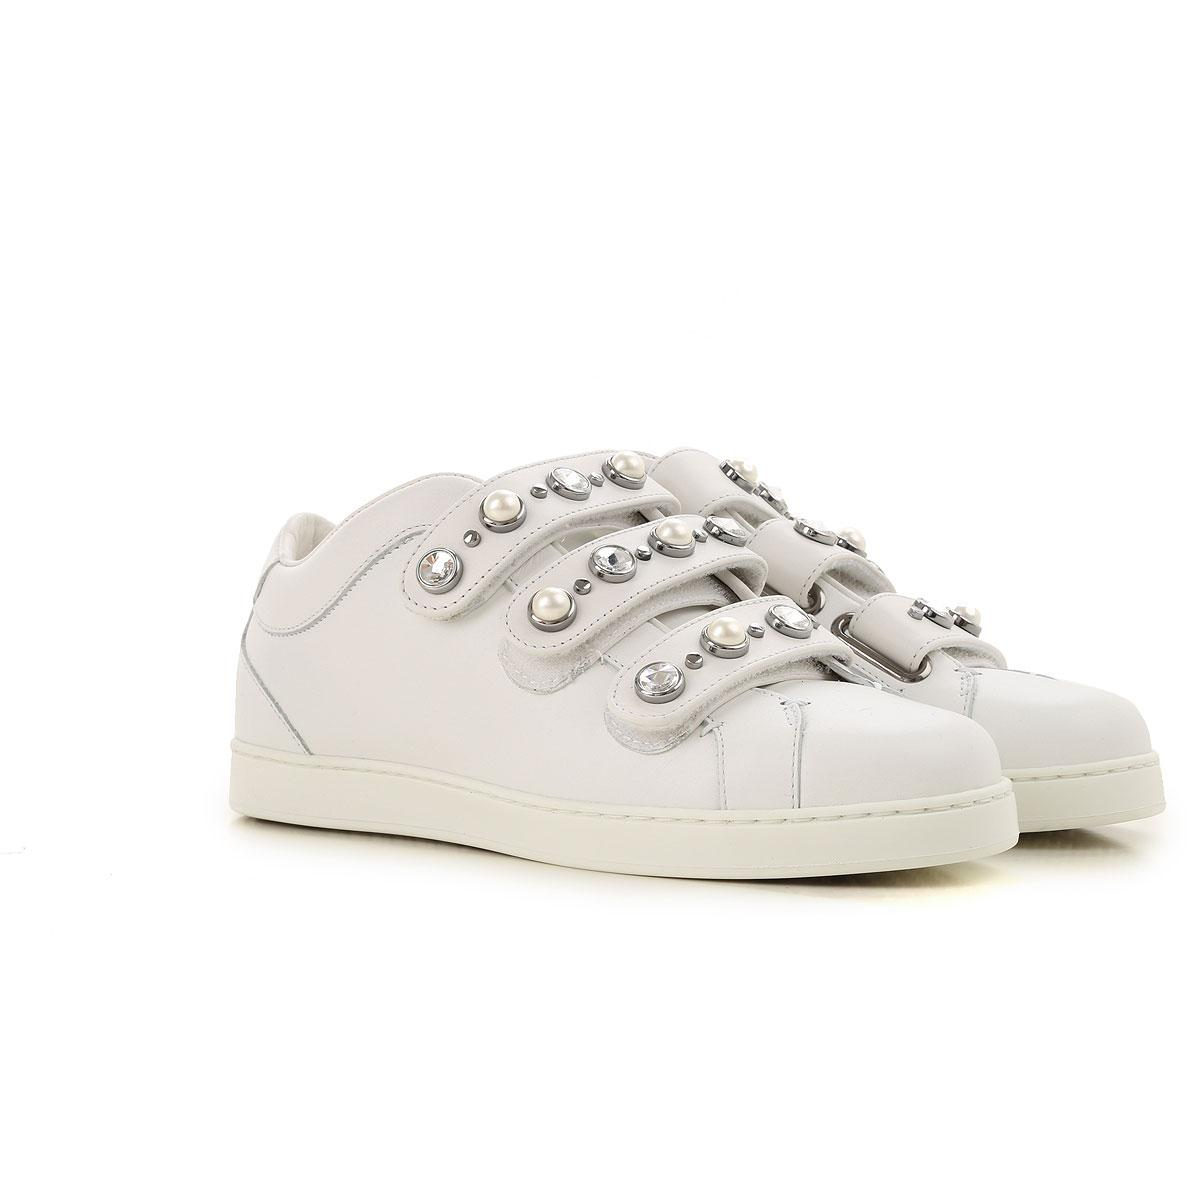 3cd1beeed7 Lyst - Jimmy Choo Sneakers For Women On Sale In Outlet in White